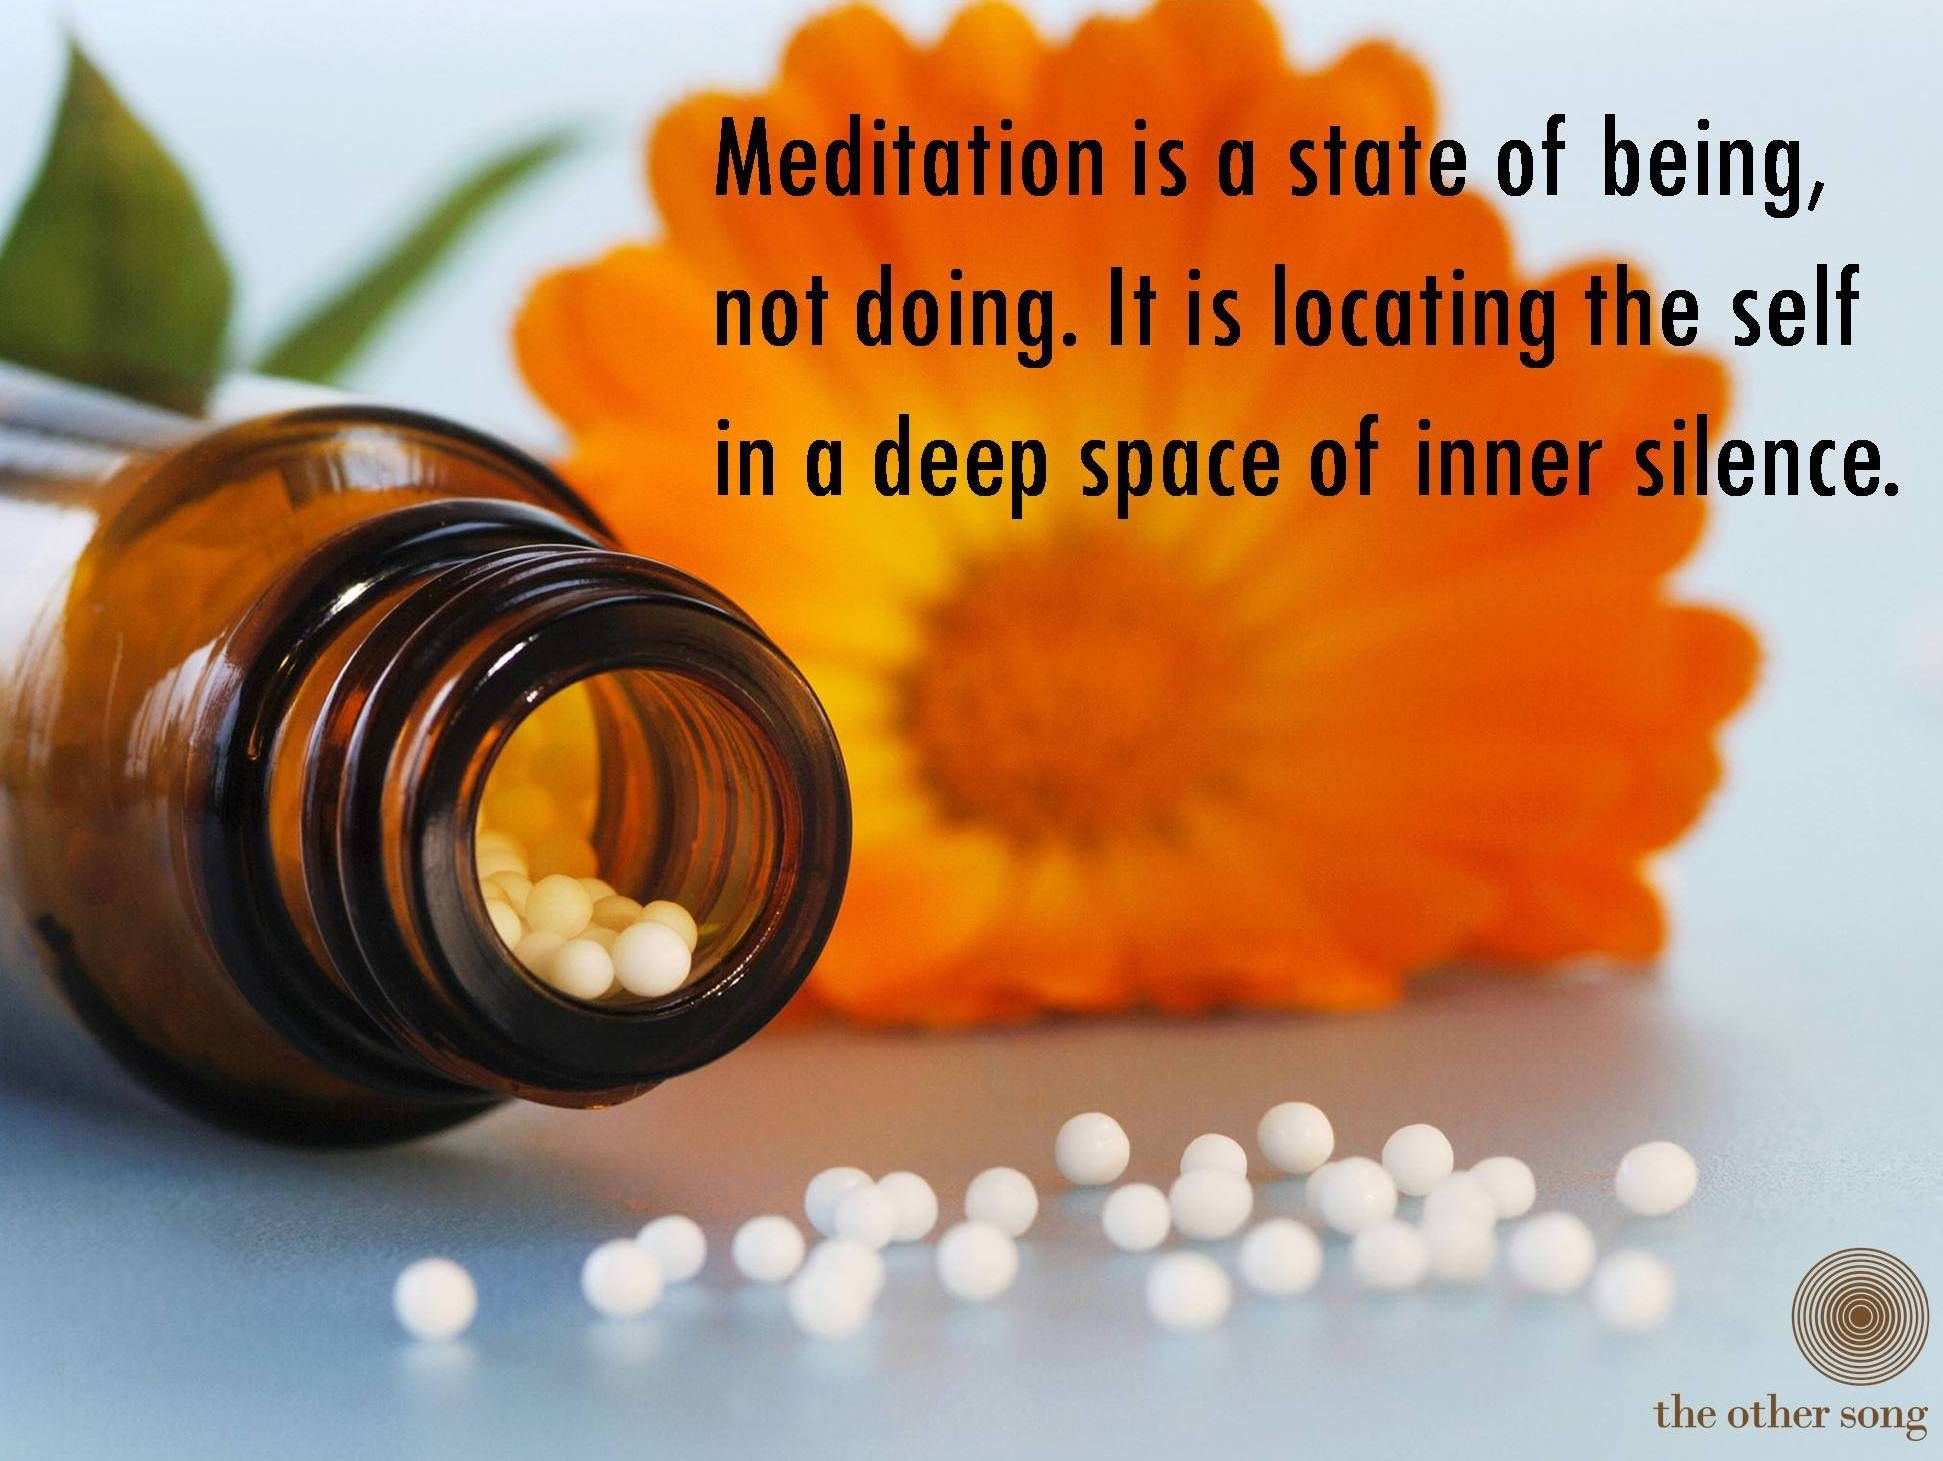 Meditation is a state of being, not doing. It is locating the self in a deep space of inner silence.